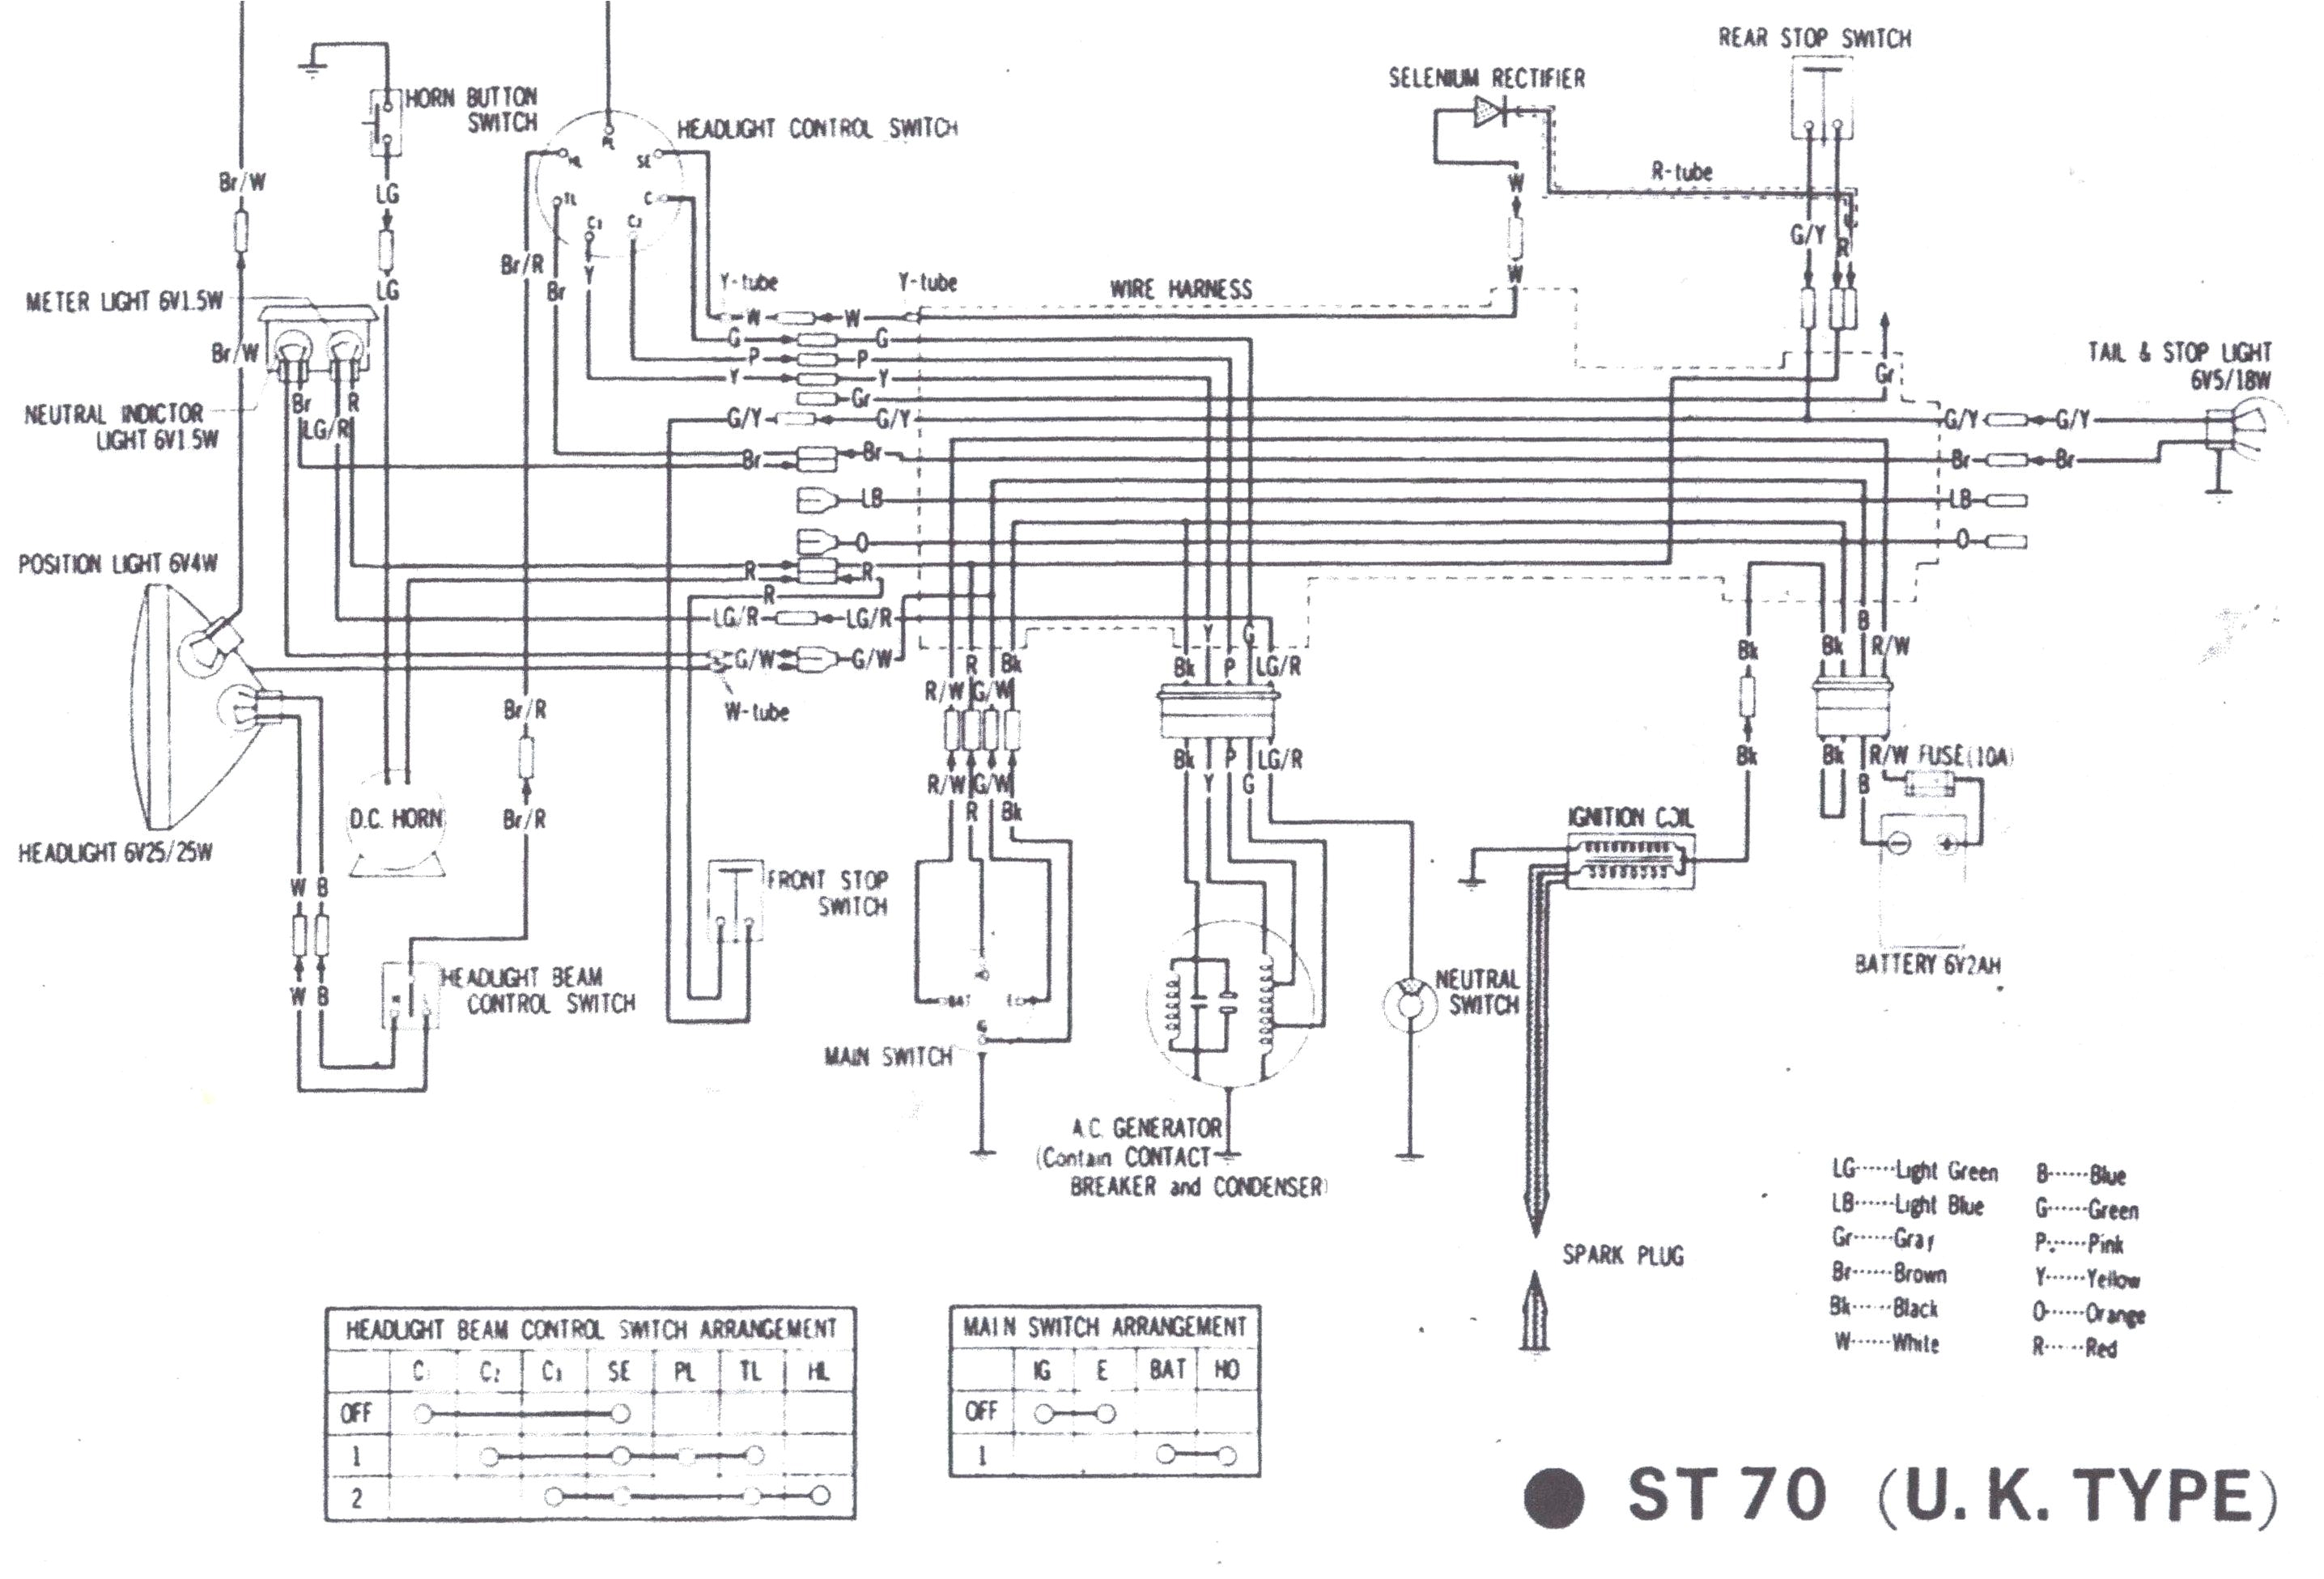 h22a4 wiring harness diagram lovely b18a1 wiring harness diagram enthusiast wiring diagrams